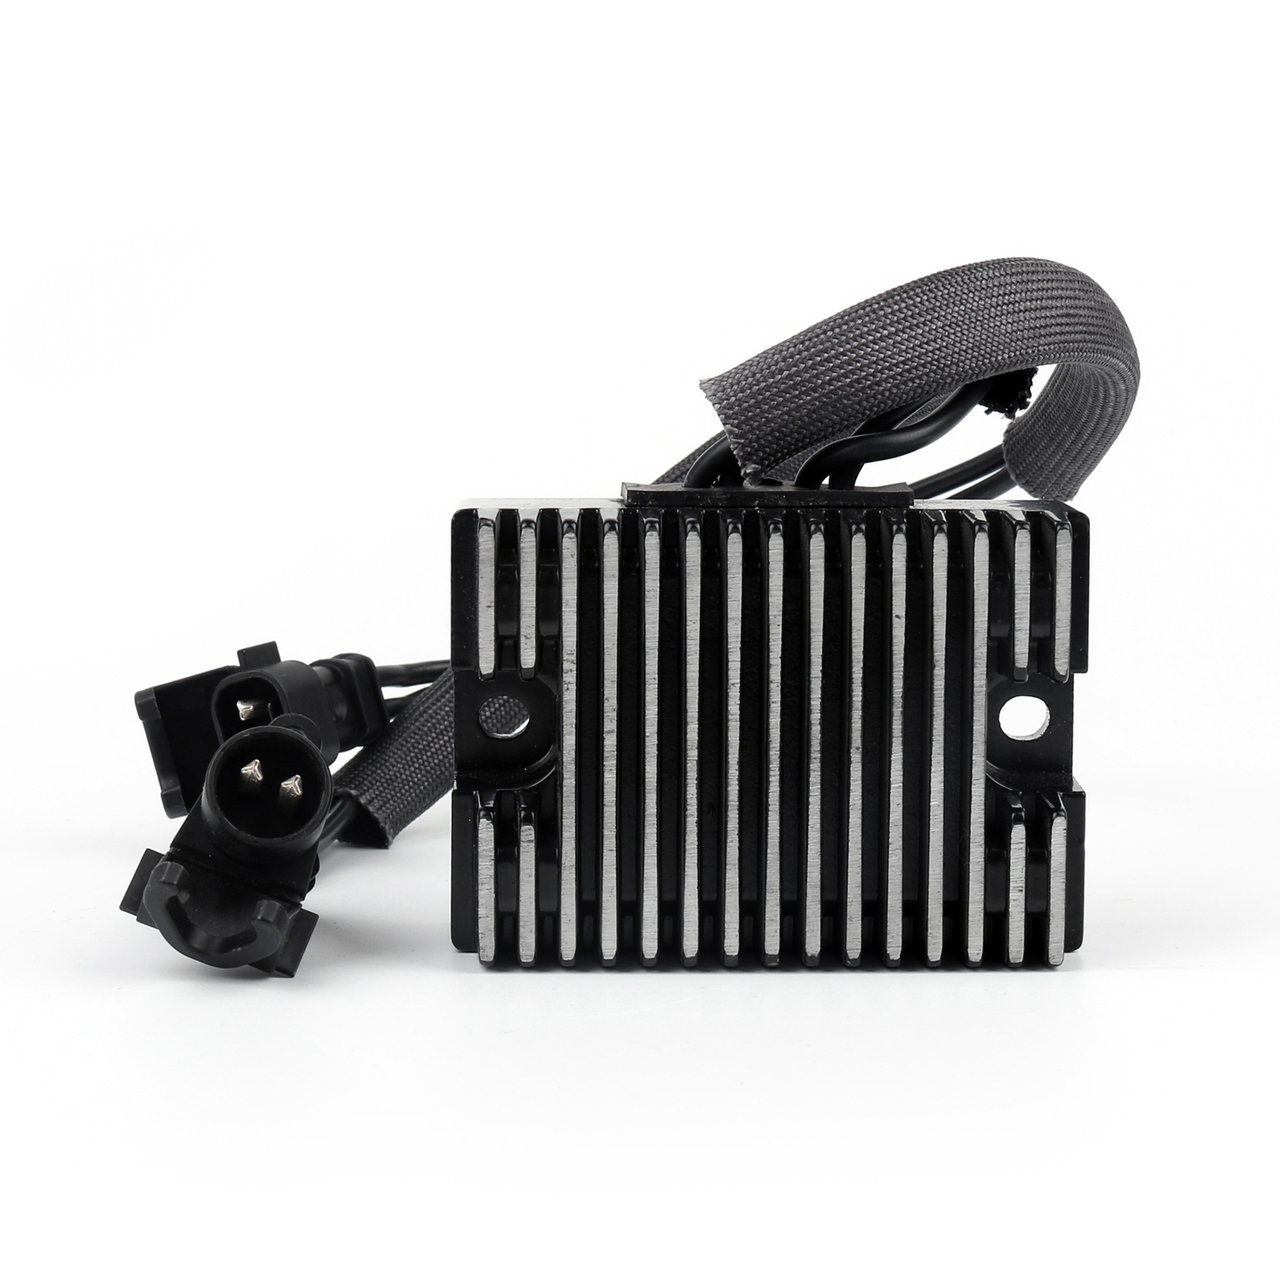 Customized Motorcycle Voltage Regulator Rectifier For Harley Davidson Sportster XL883N 2013 цена